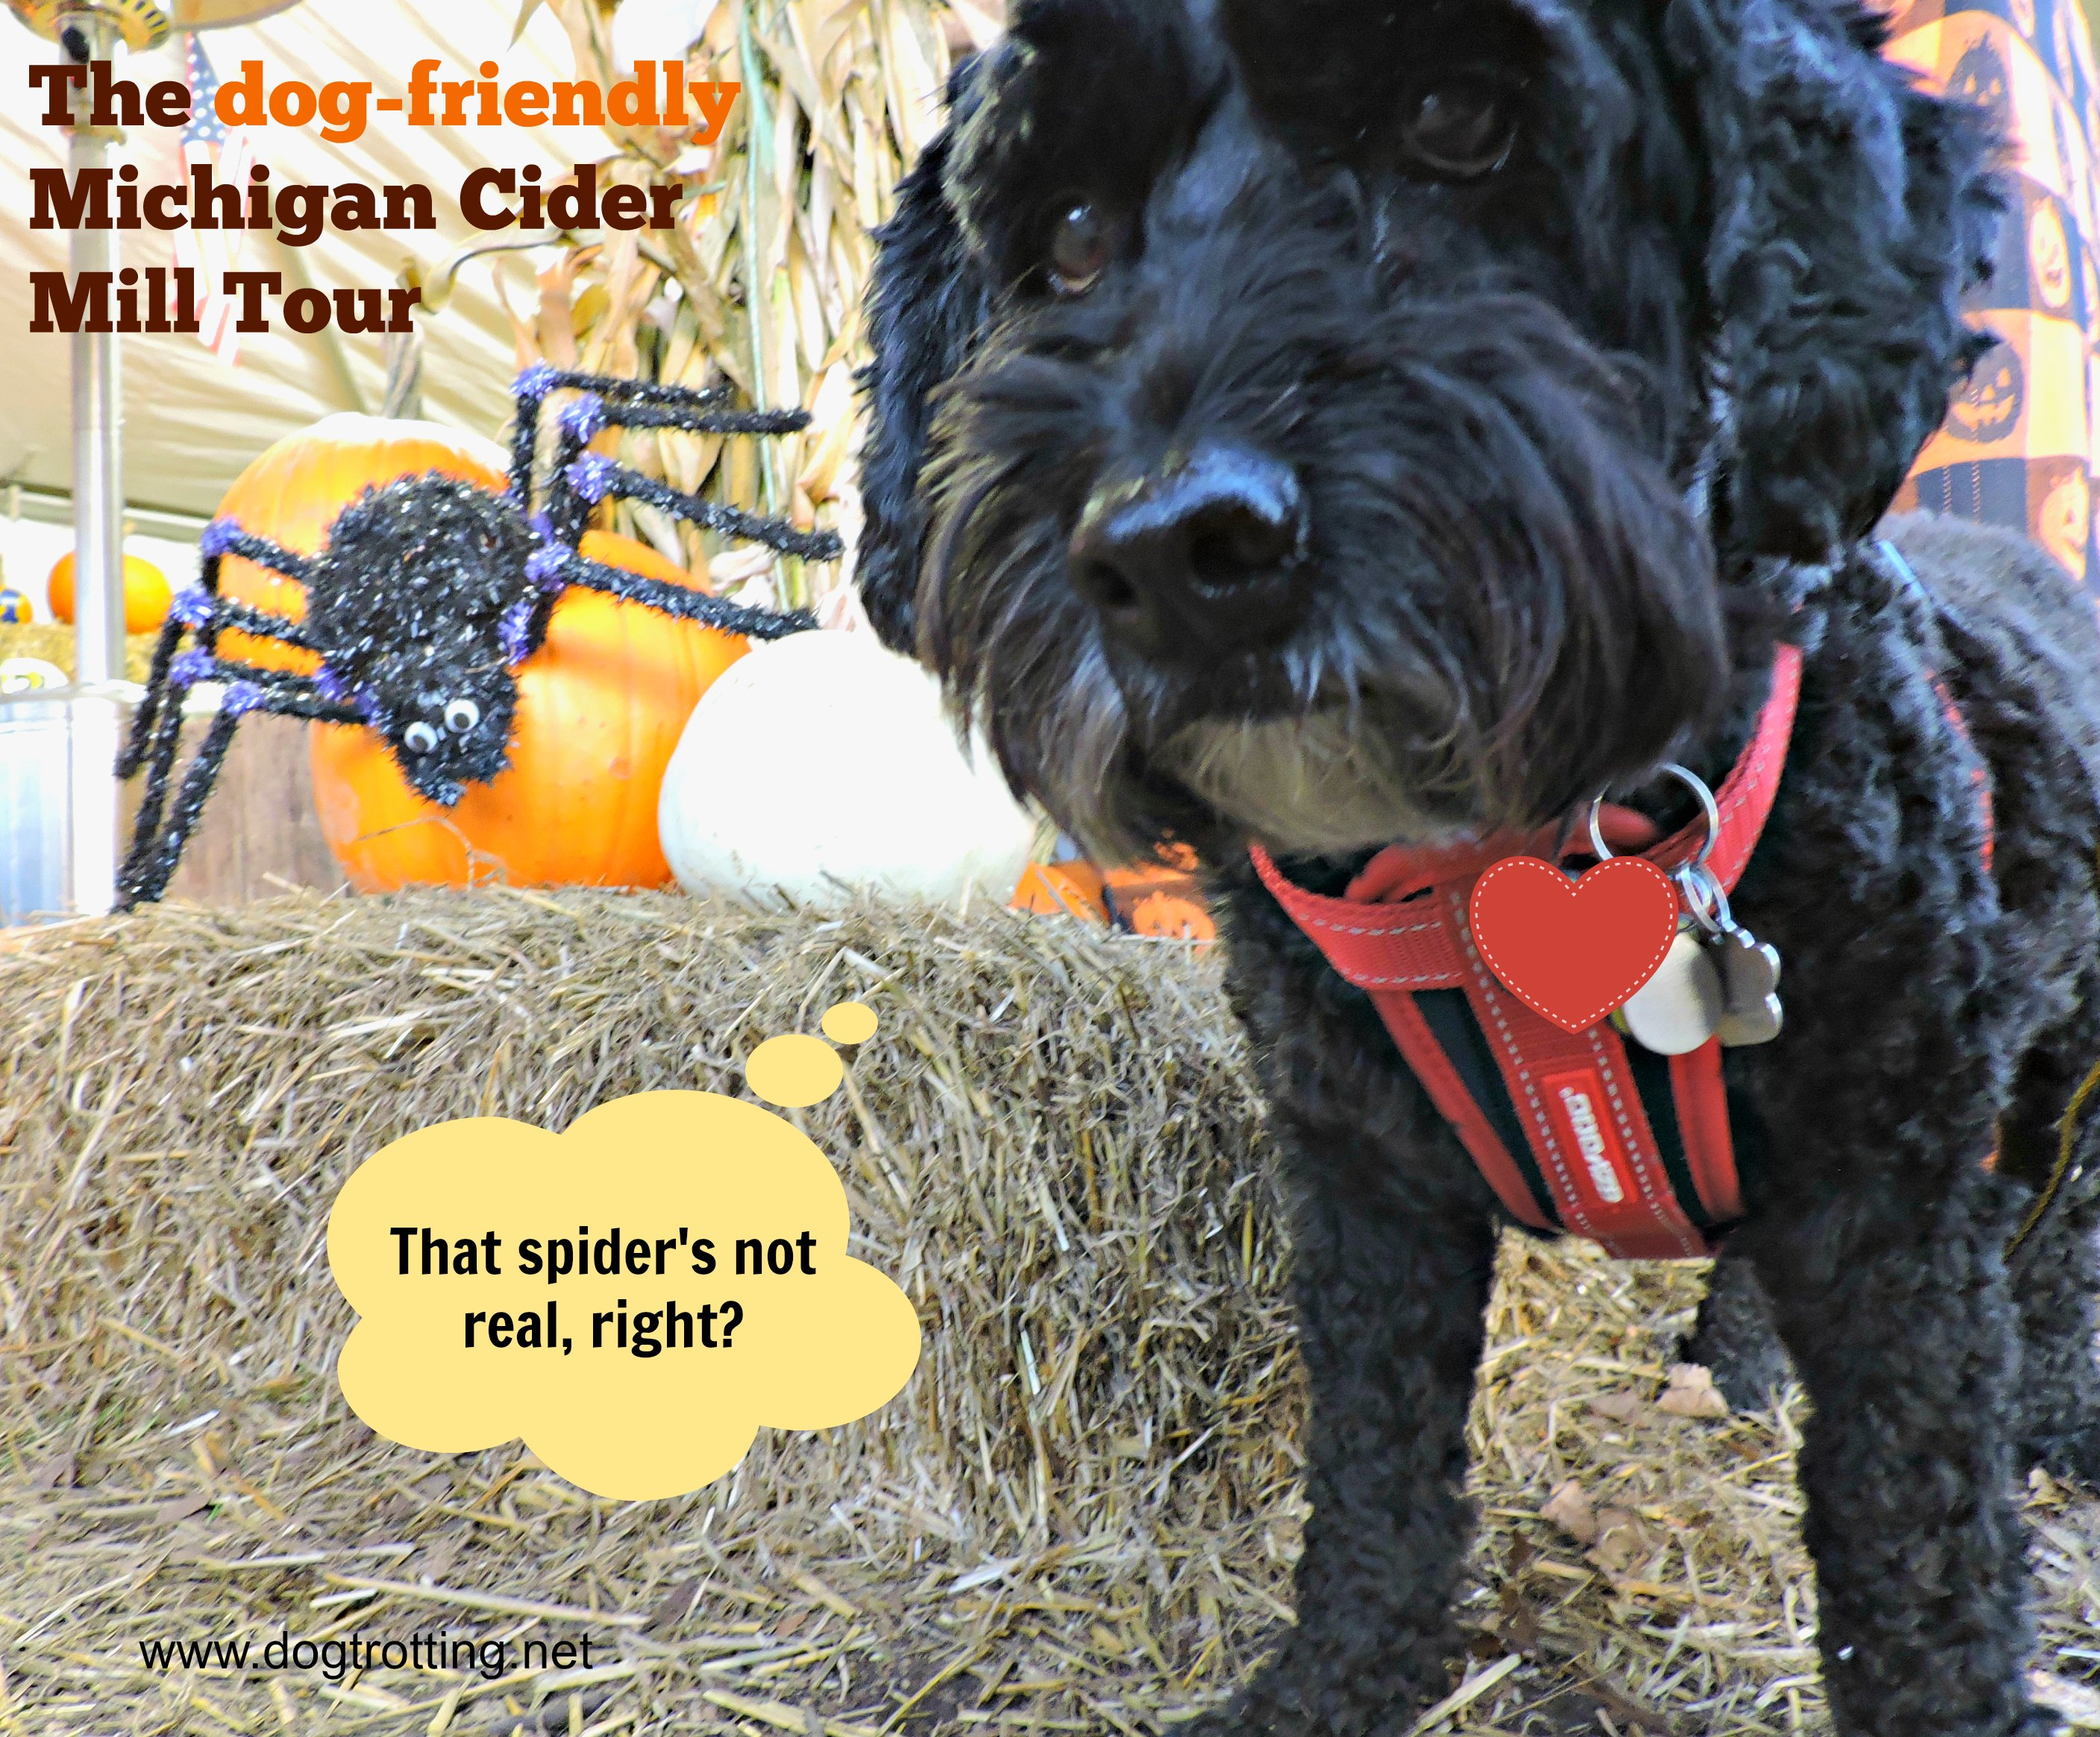 Travel Rochester, MI: Dog-friendly Cider Mills Here We Come